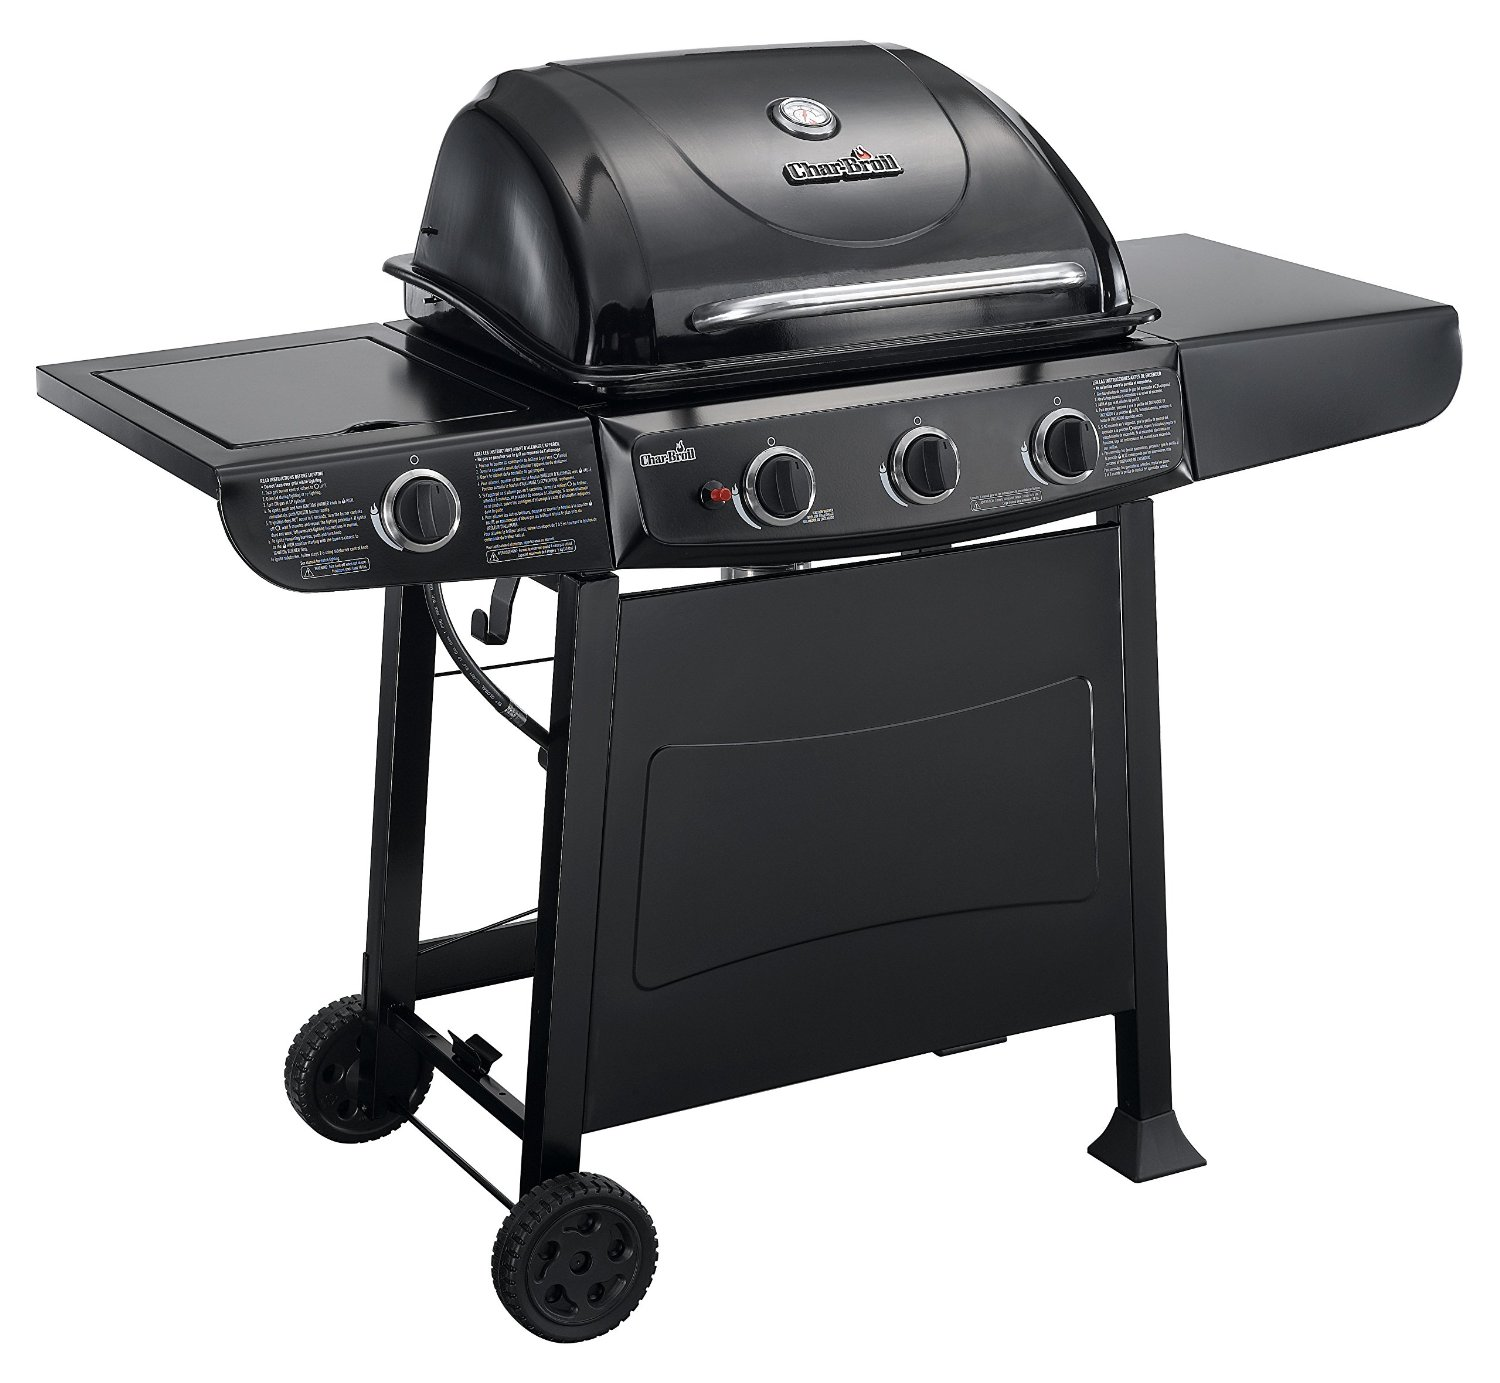 The Char Broil 3 Burner Grill